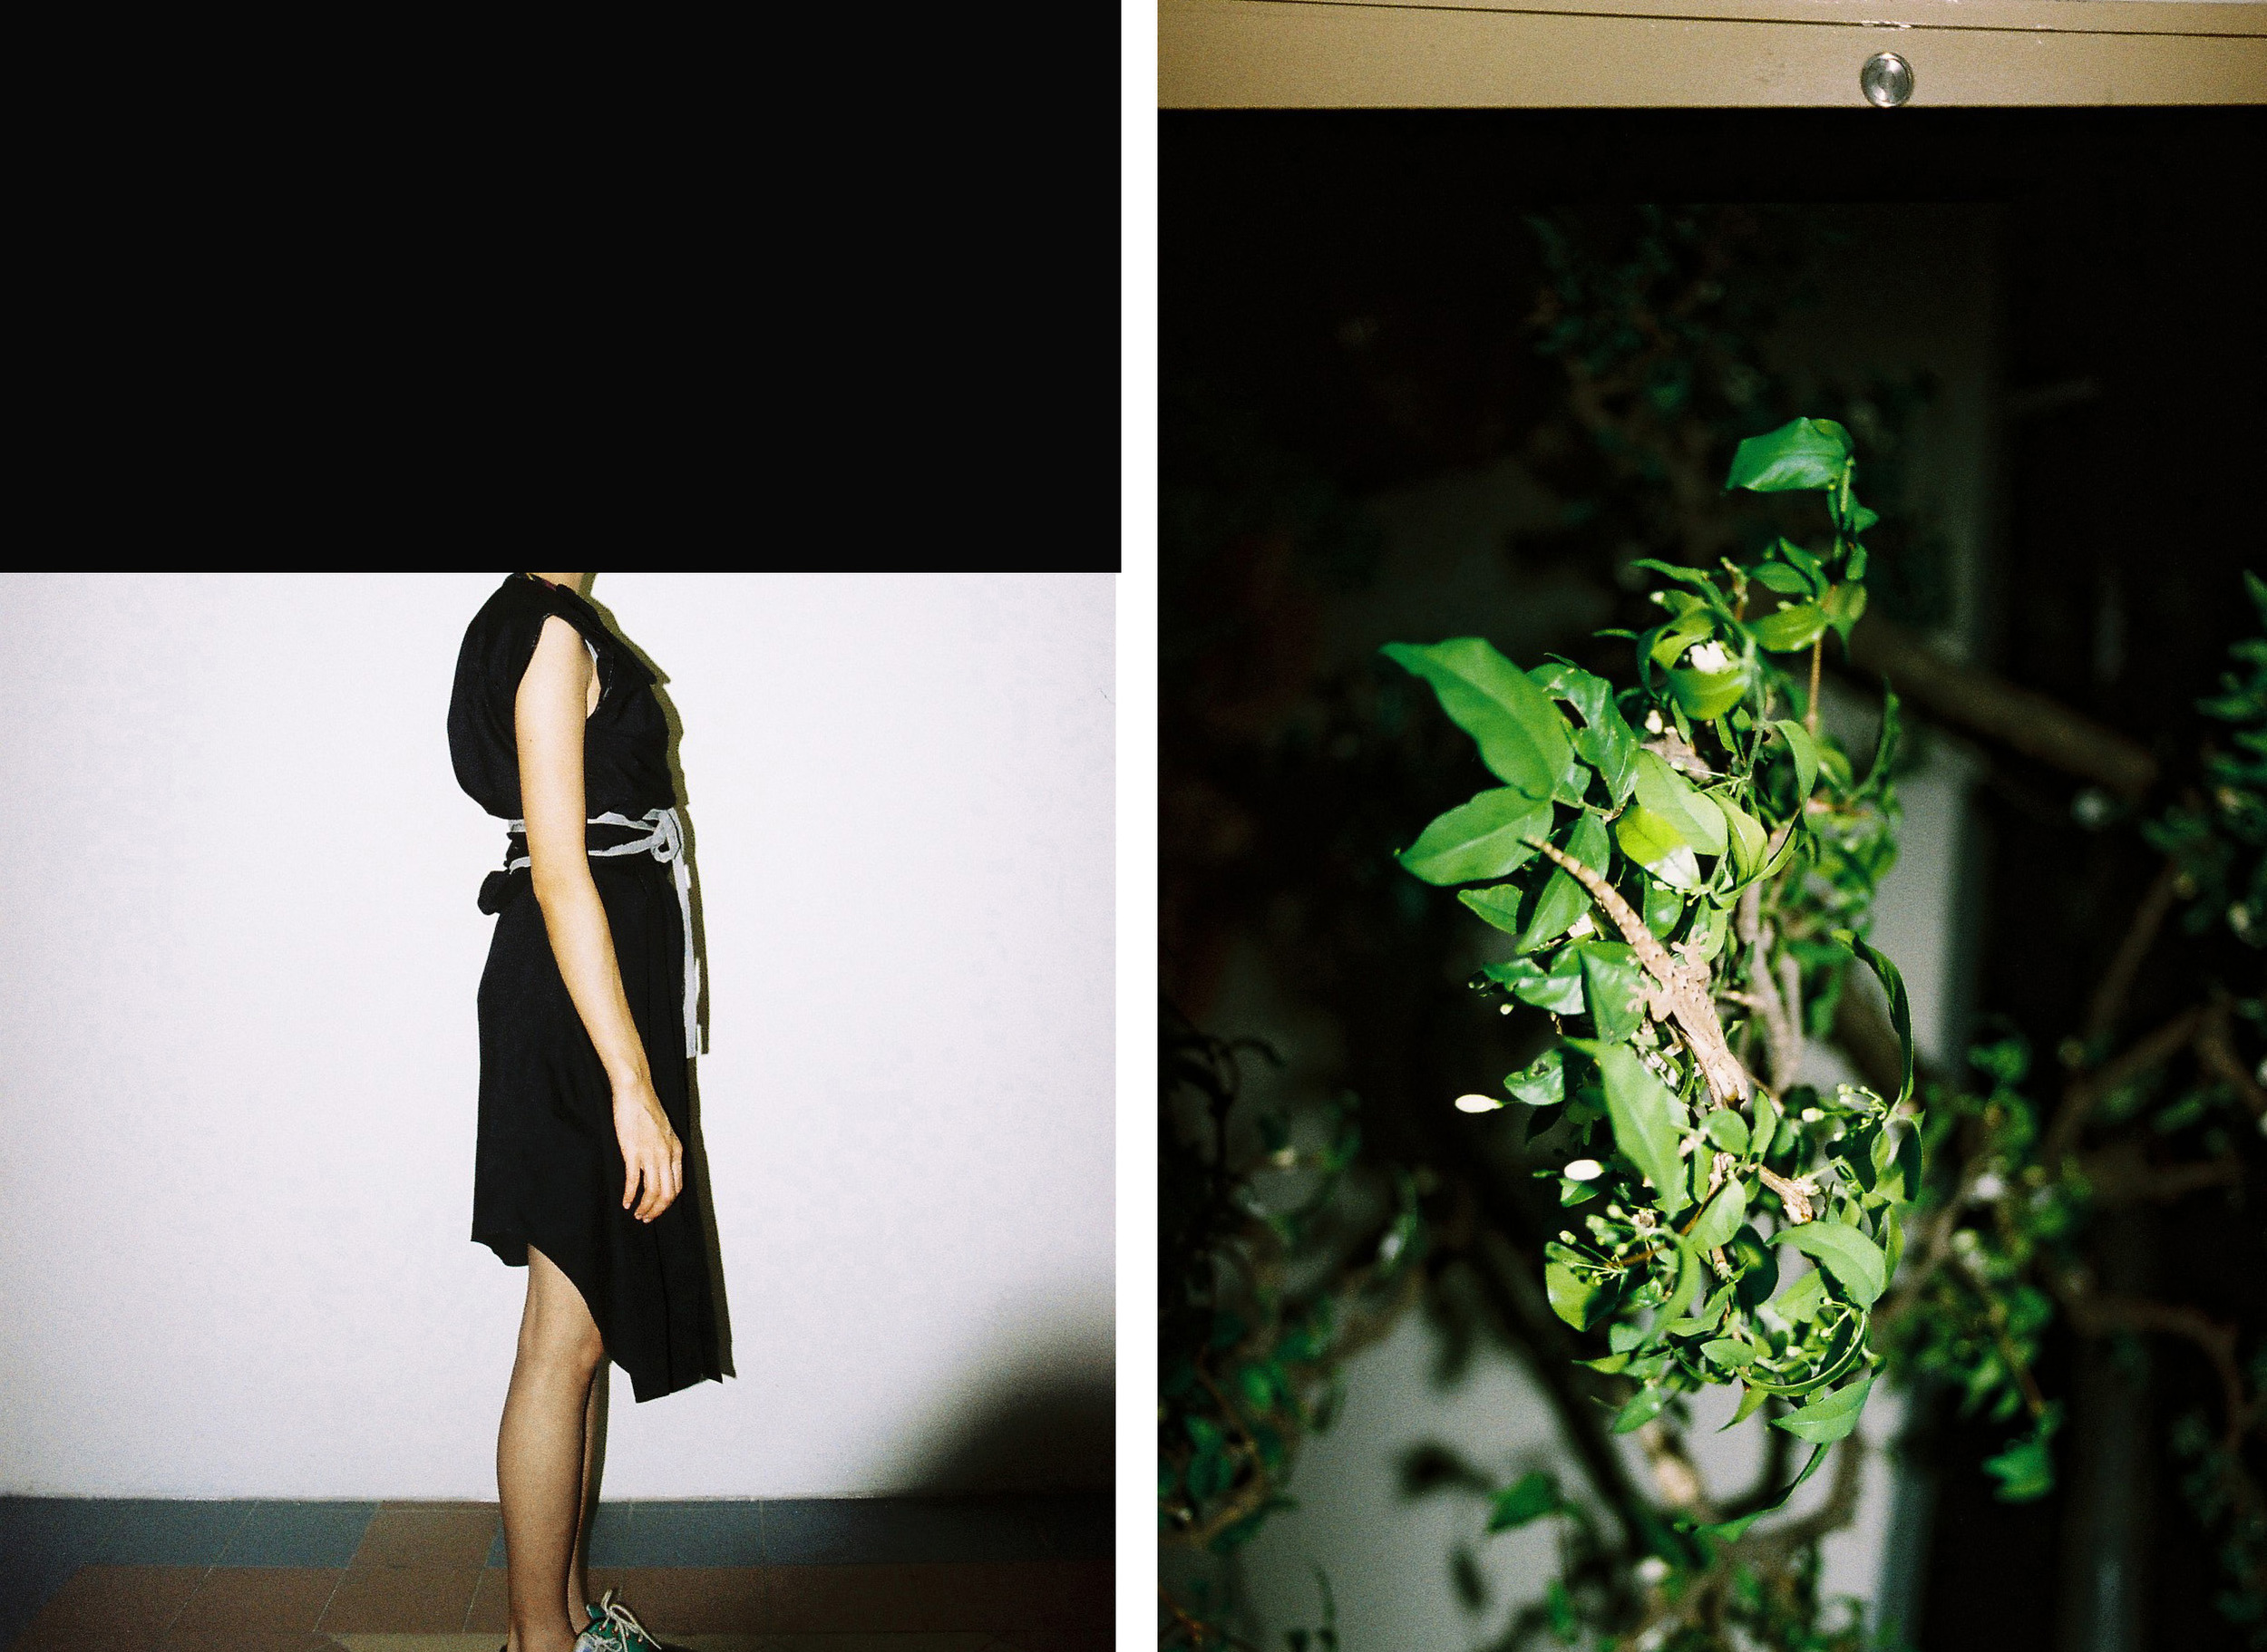 black dress lizard plant copy.jpg